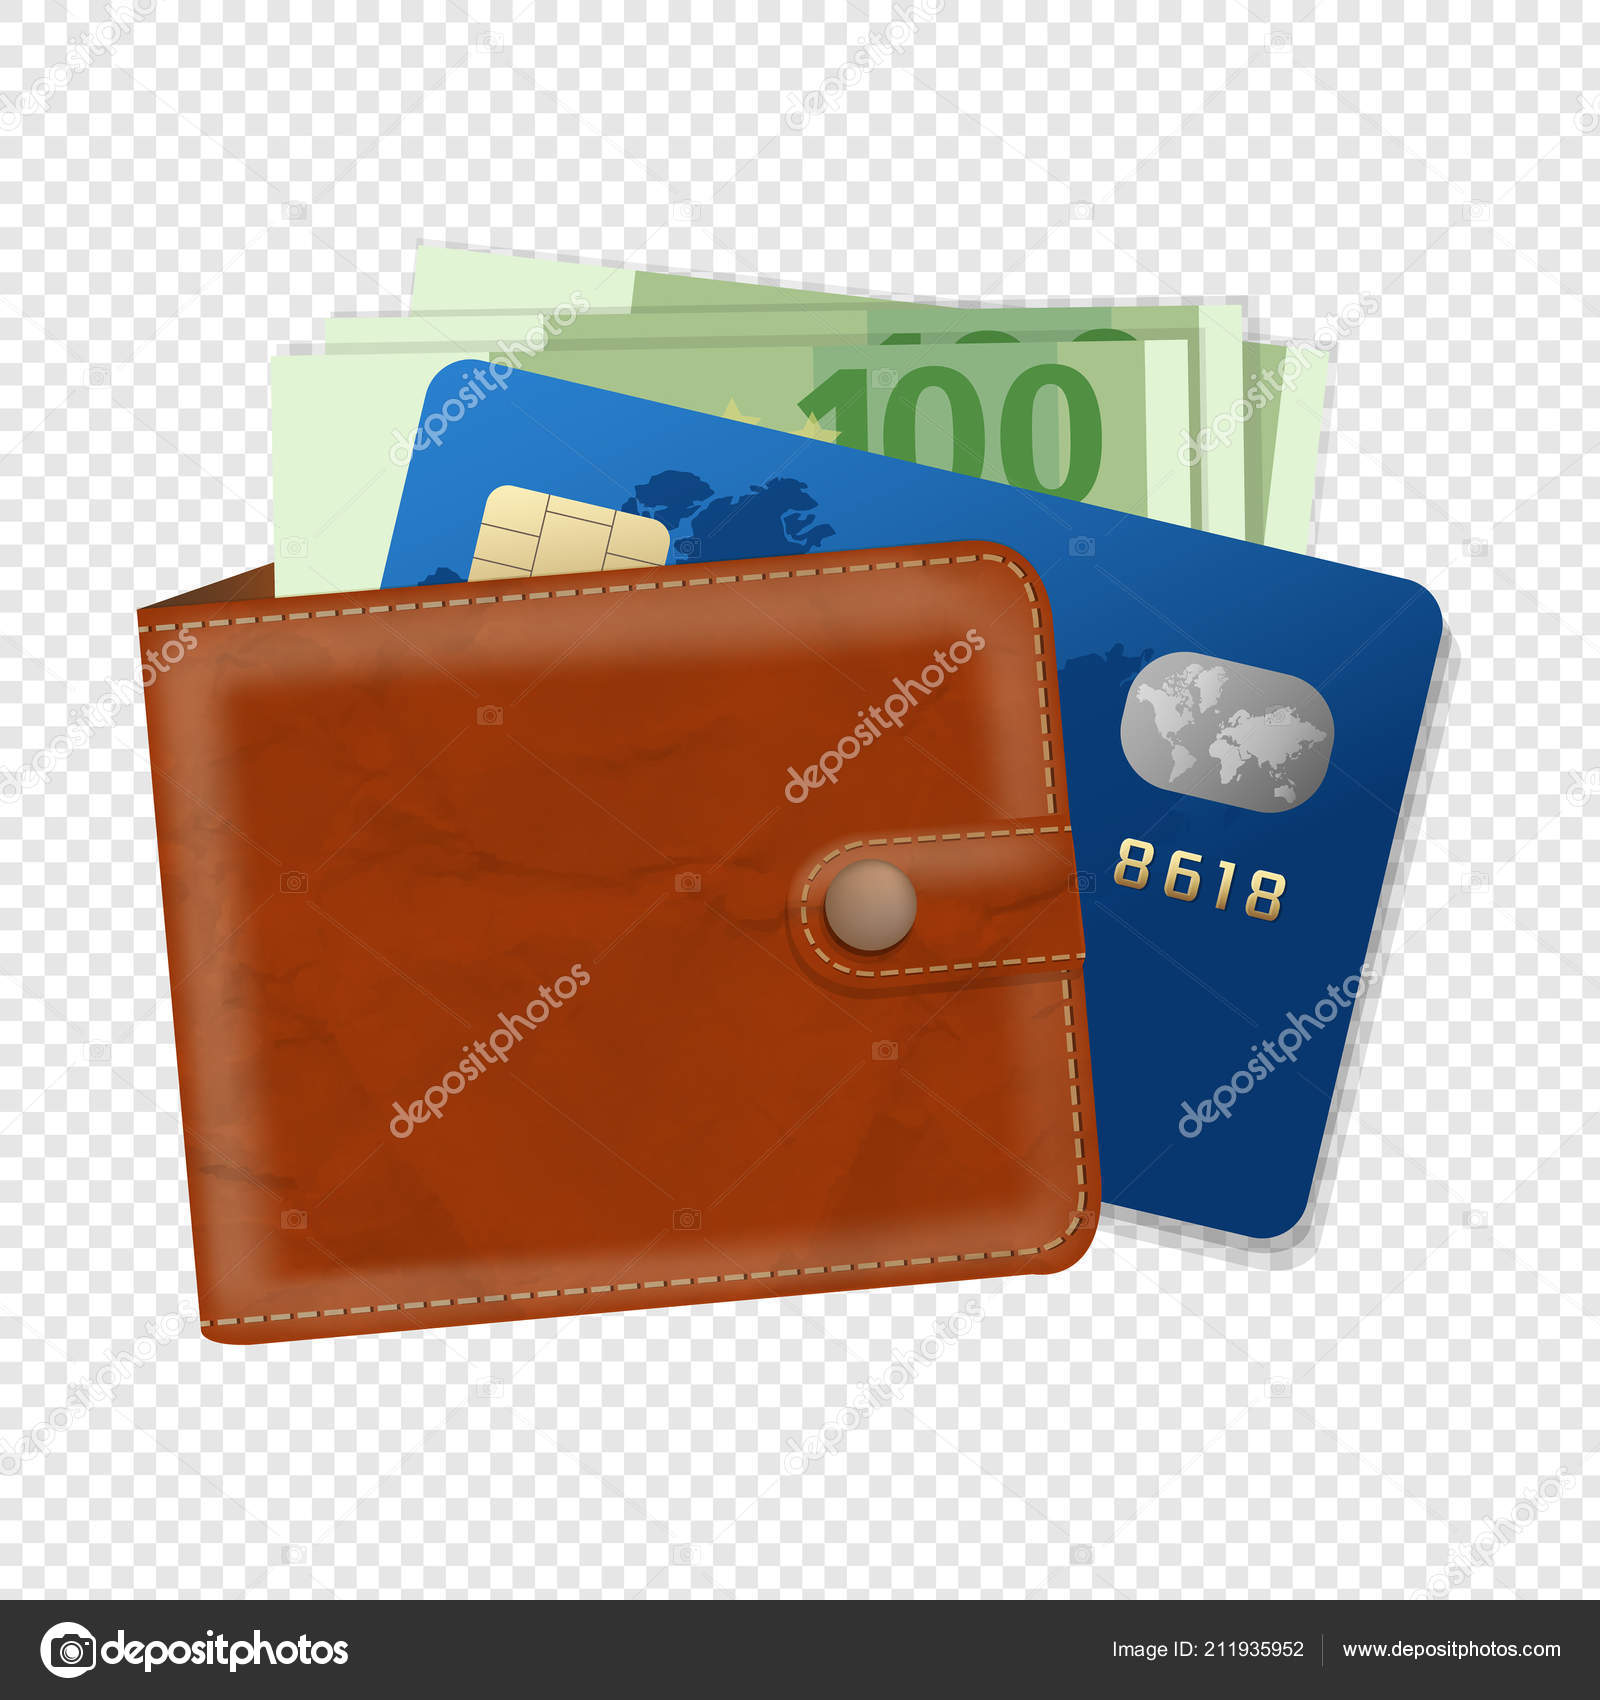 wallet credit card money transparent background gradient mesh